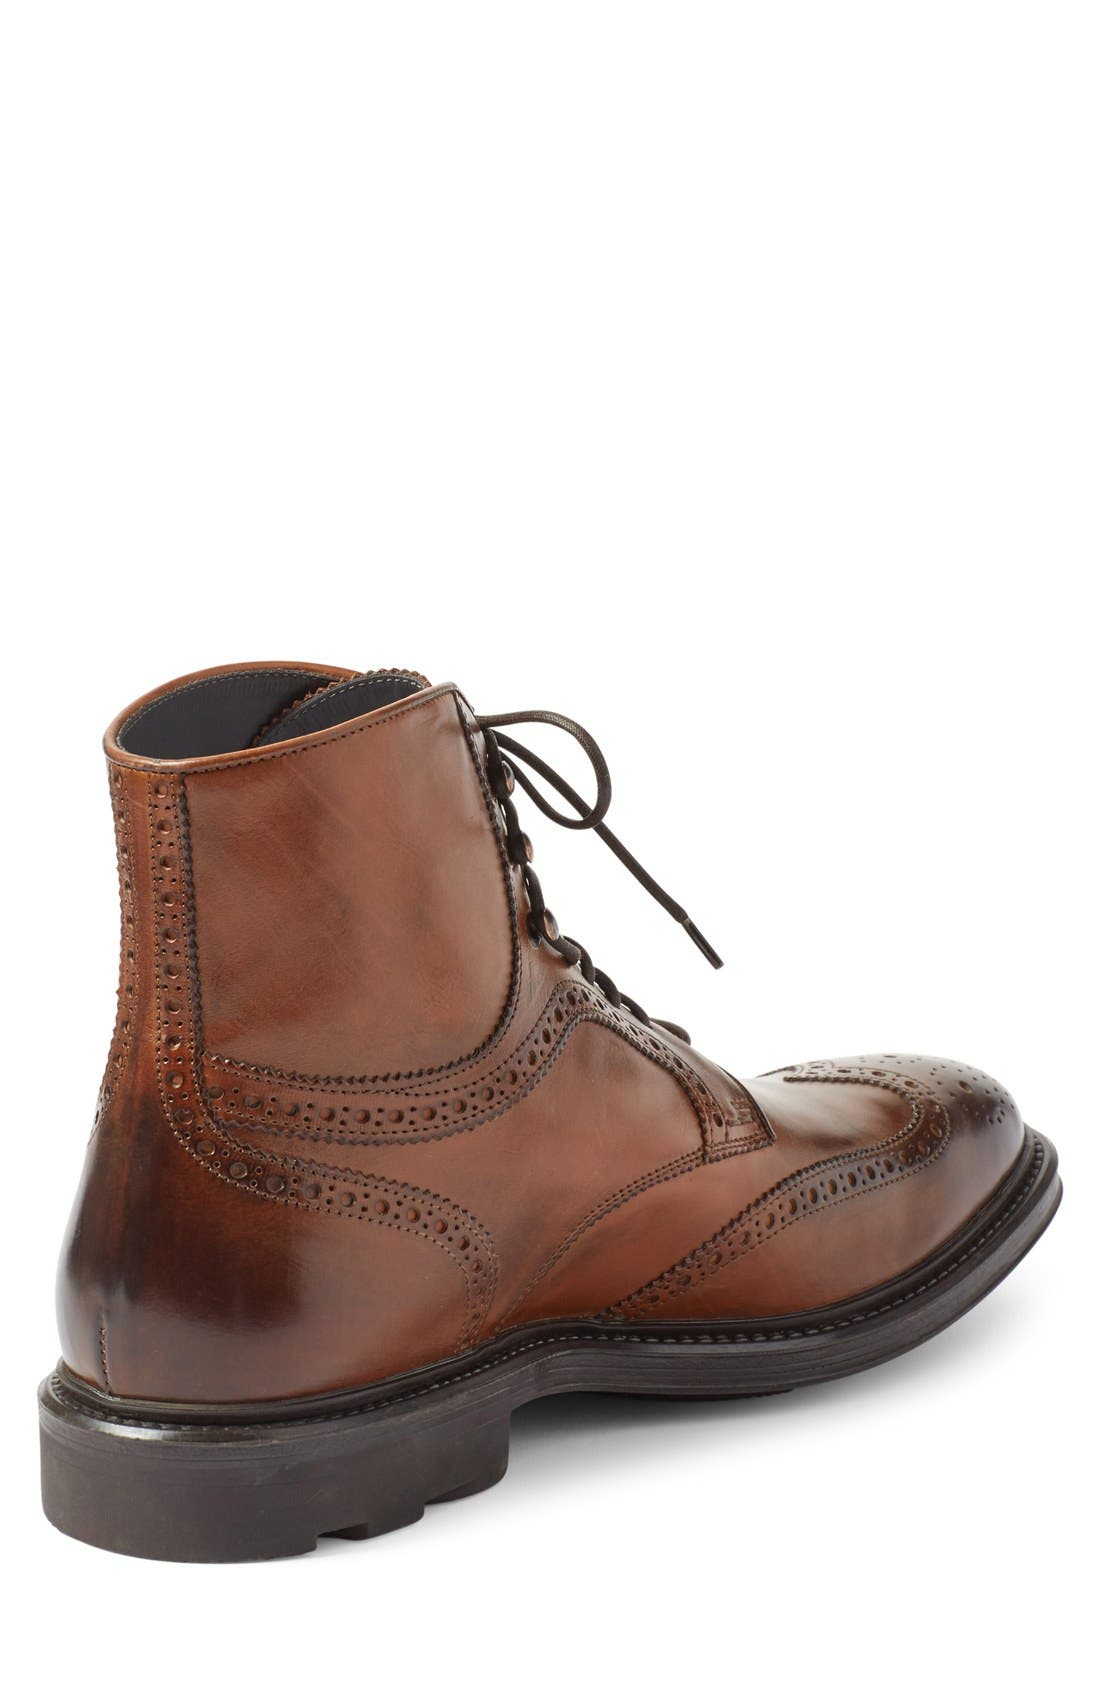 Alternate Image 2  - To Boot New York 'Hobson' Wingtip Boot (Men)